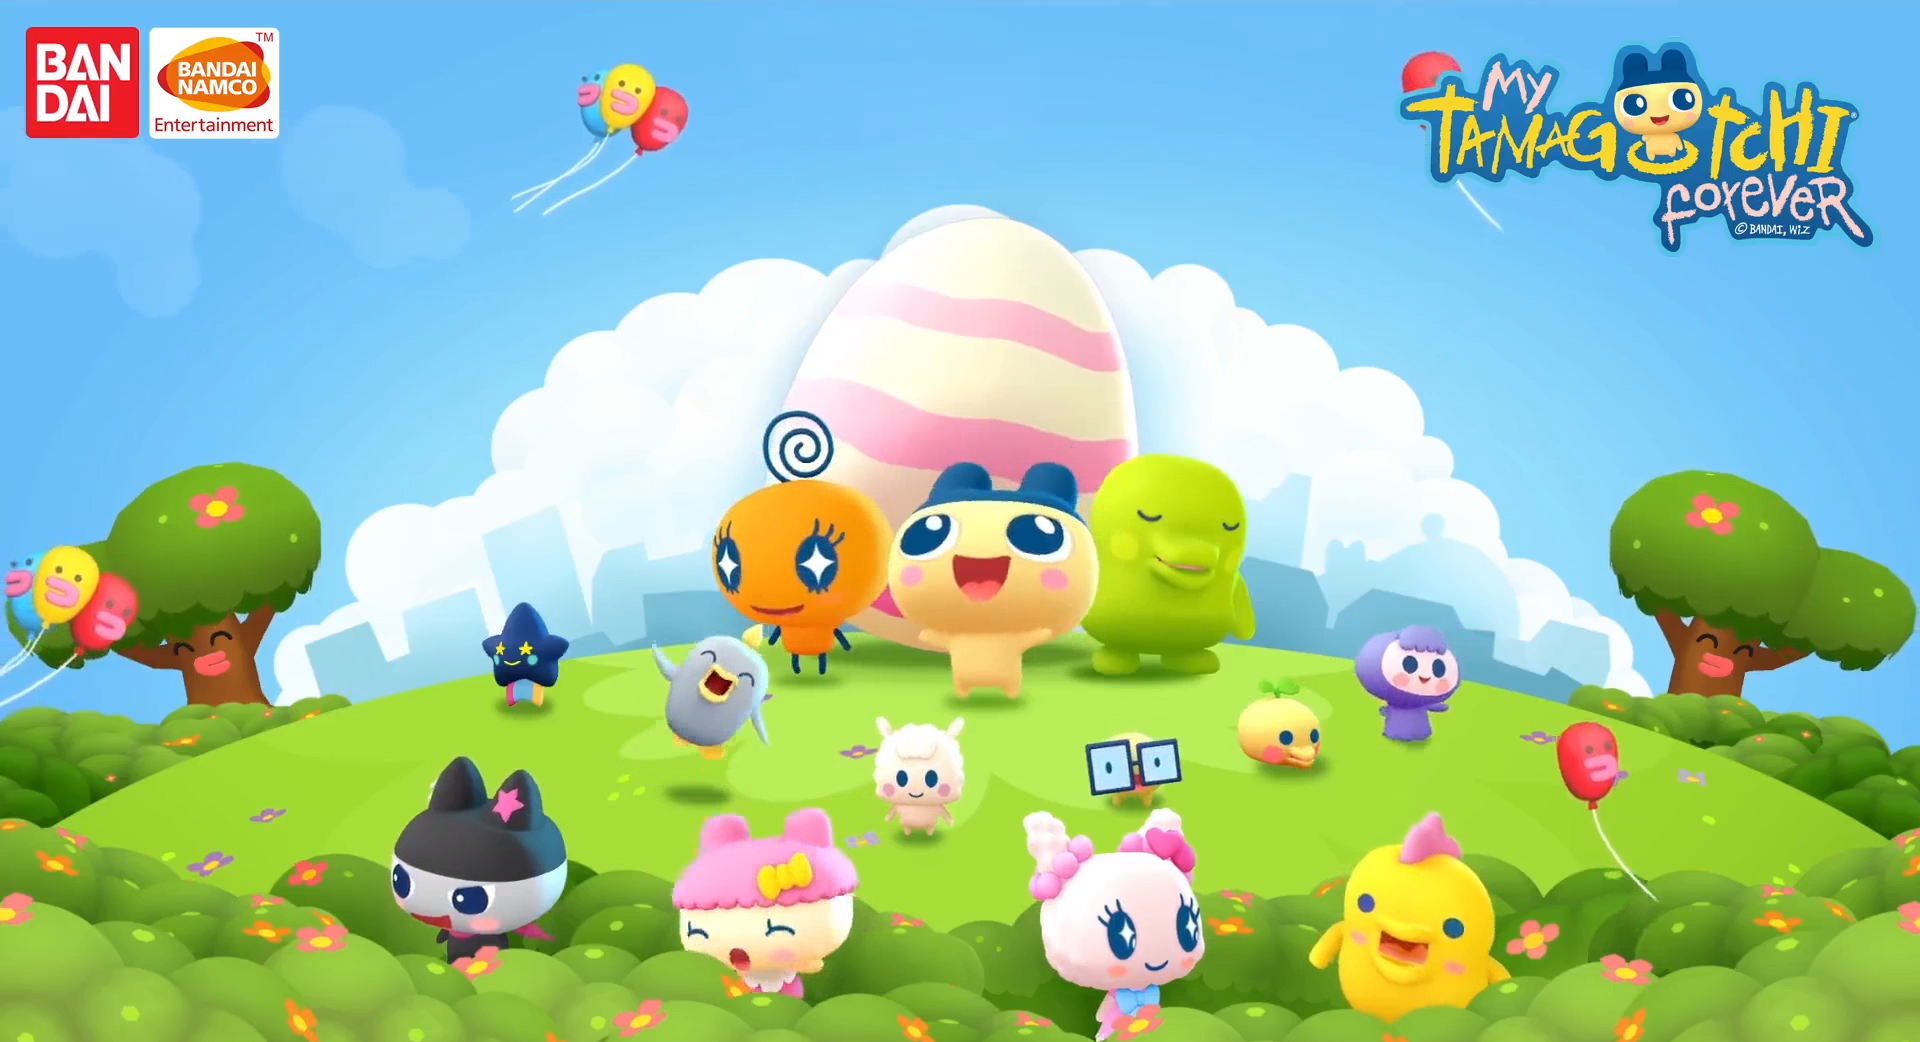 Bandai Namco's upcoming My Tamagotchi Forever game for Android currently  exists as a soft-launch title on the Google Play Store that is only  available to ...